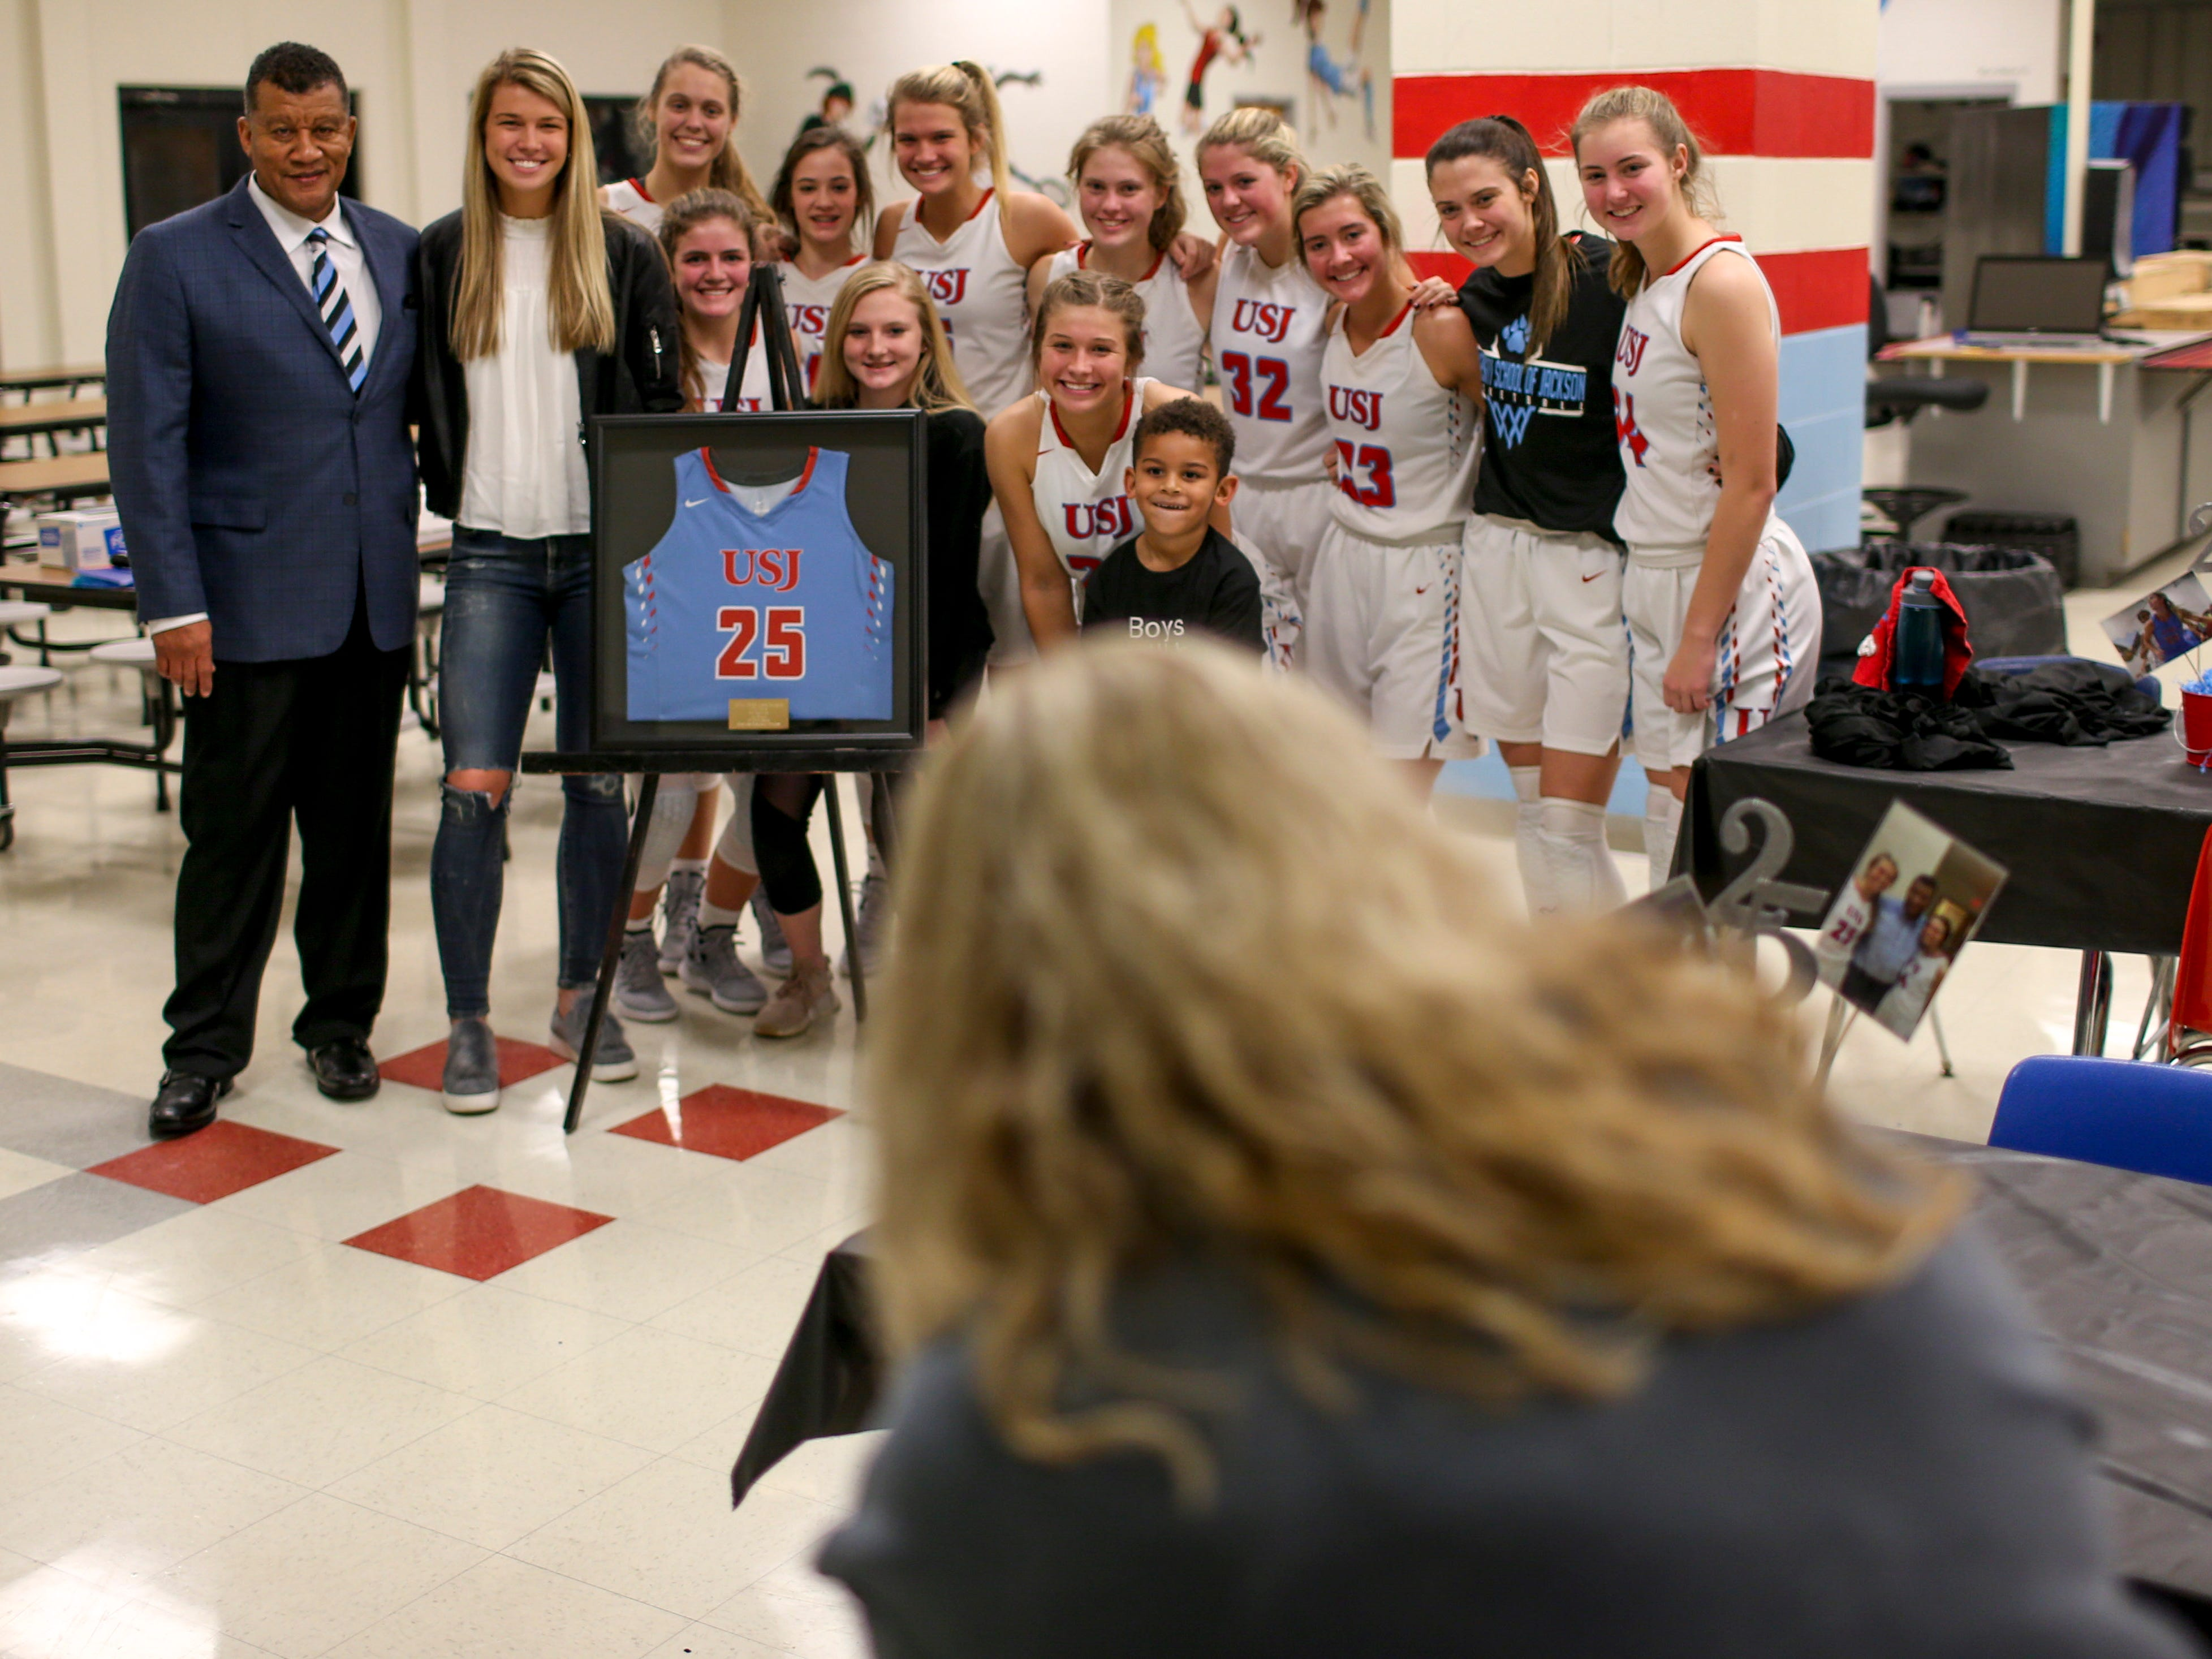 Anna Jones poses for photos with Tony Schutes and the current USJ girls basketball team at University School of Jackson in Jackson, Tenn., on Friday, Dec. 7, 2018.